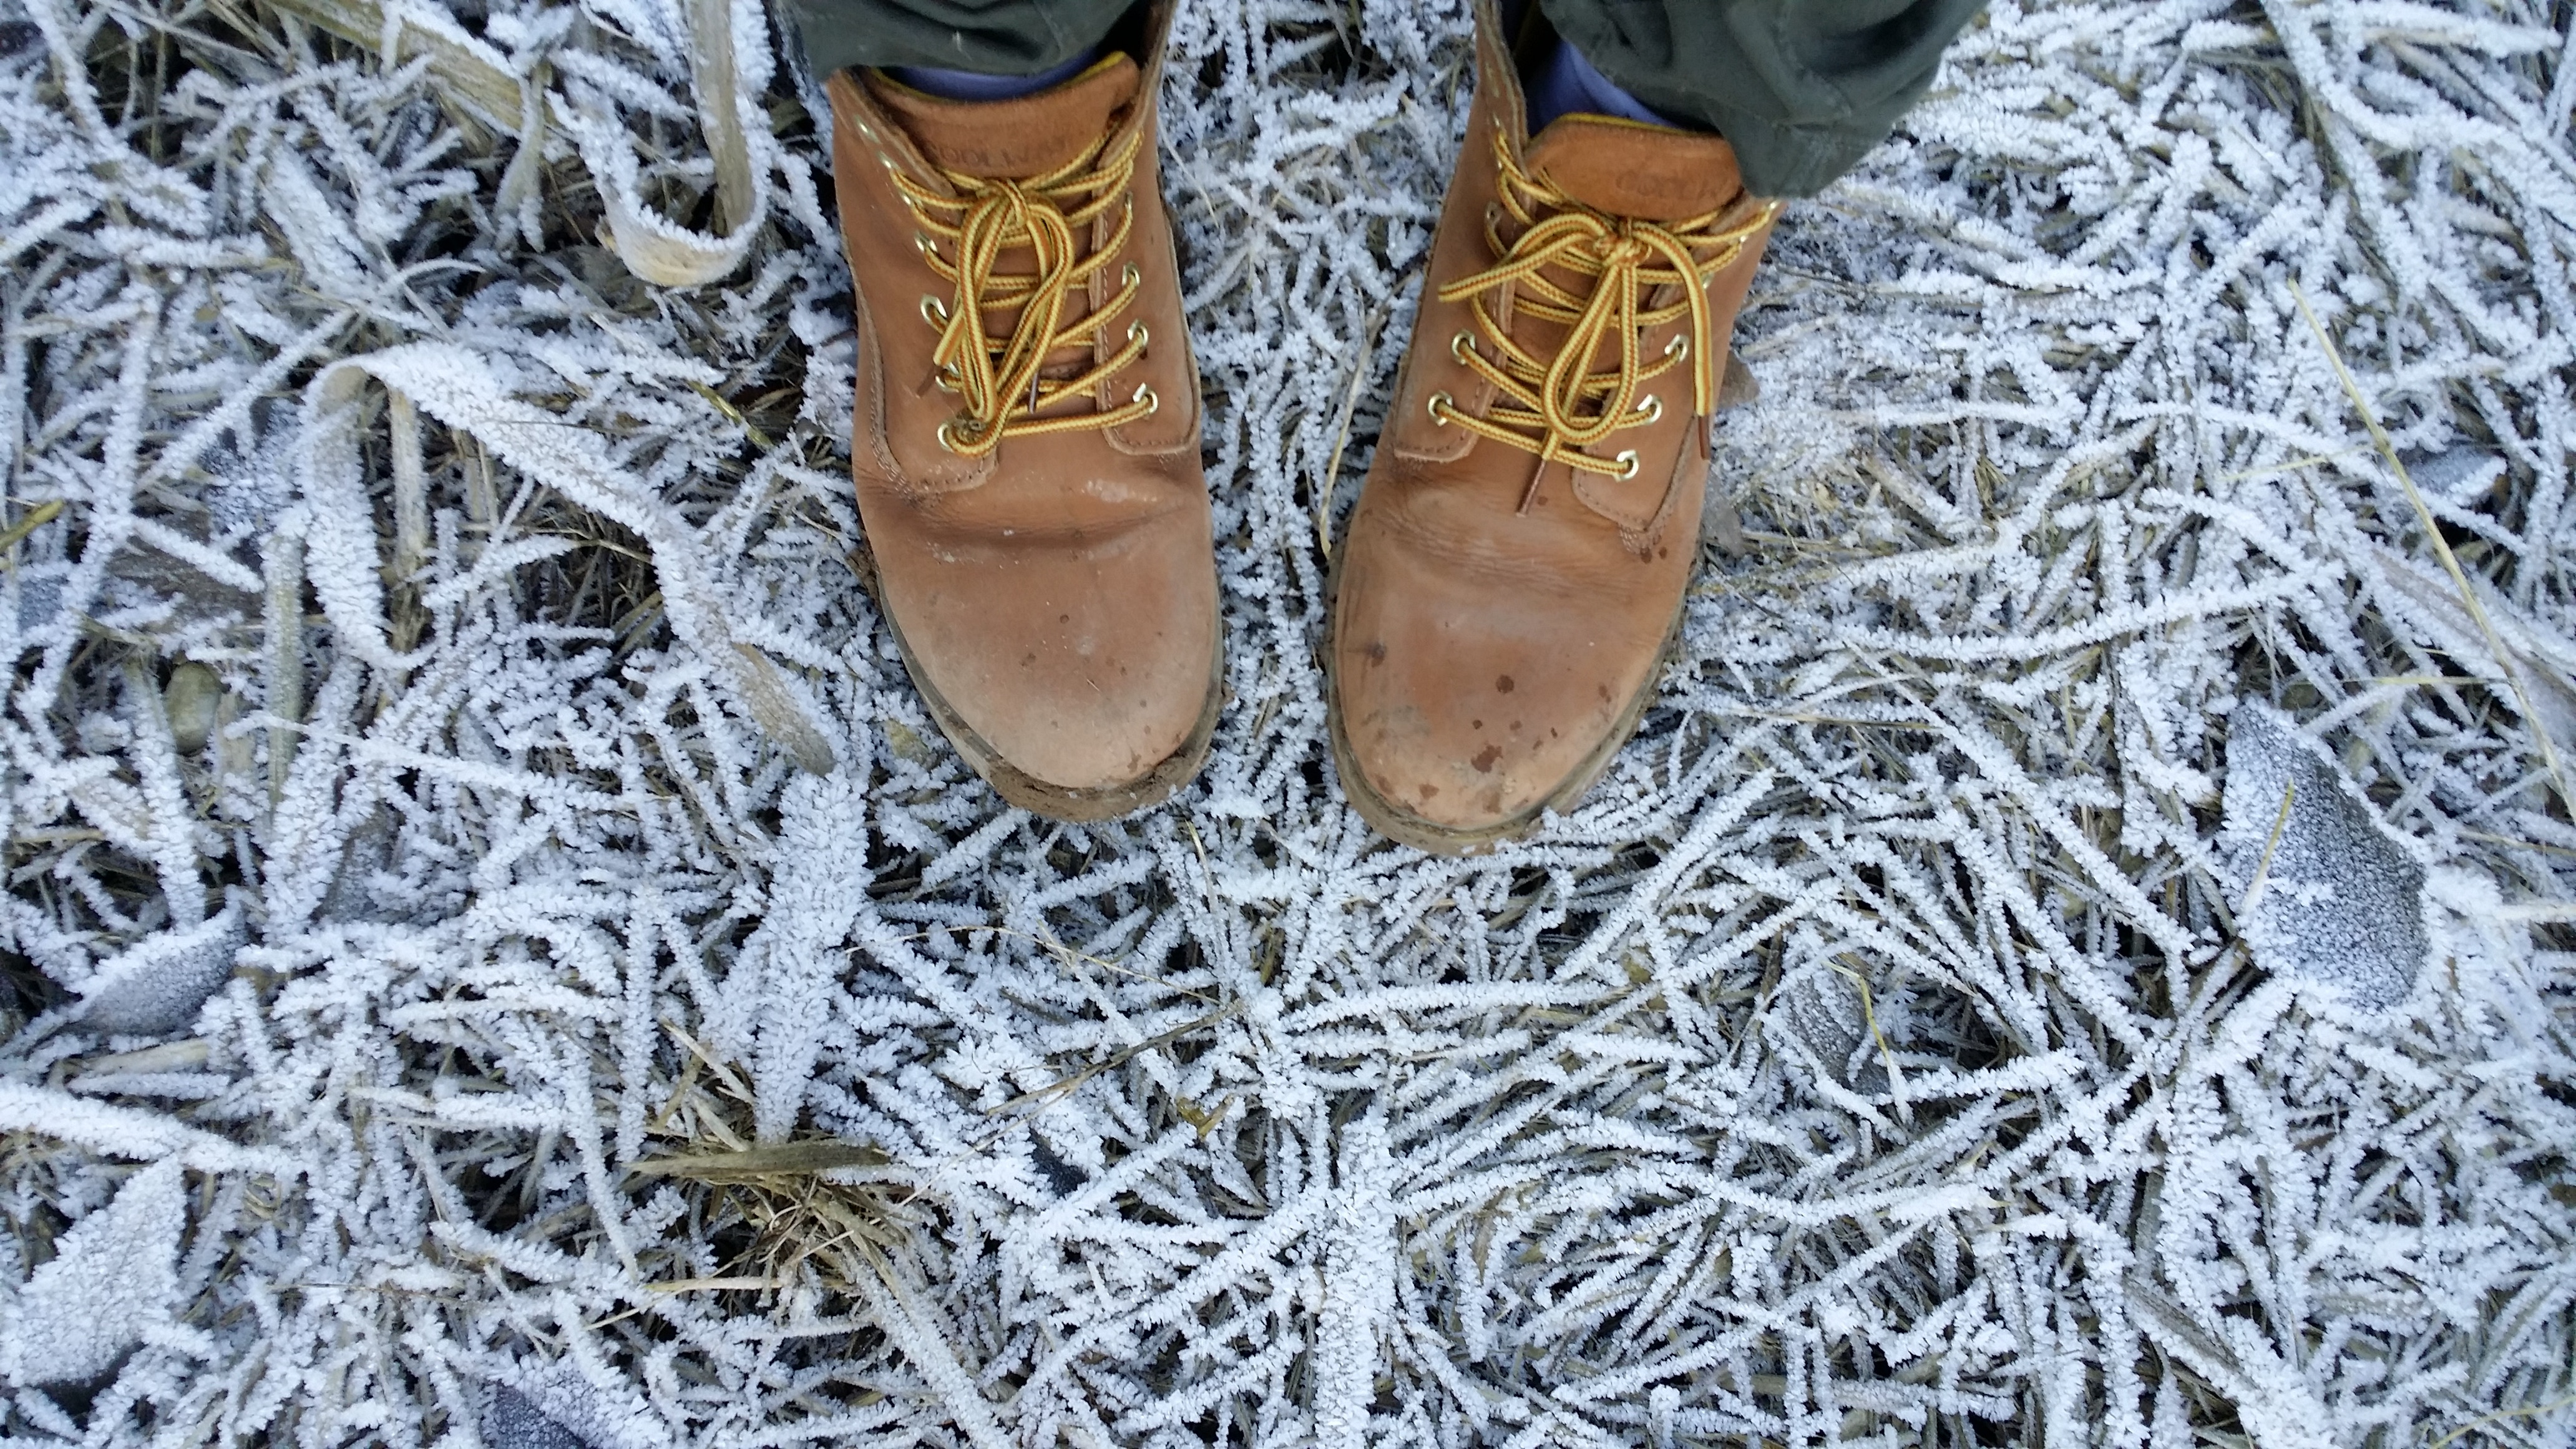 Boots in frosty grass.